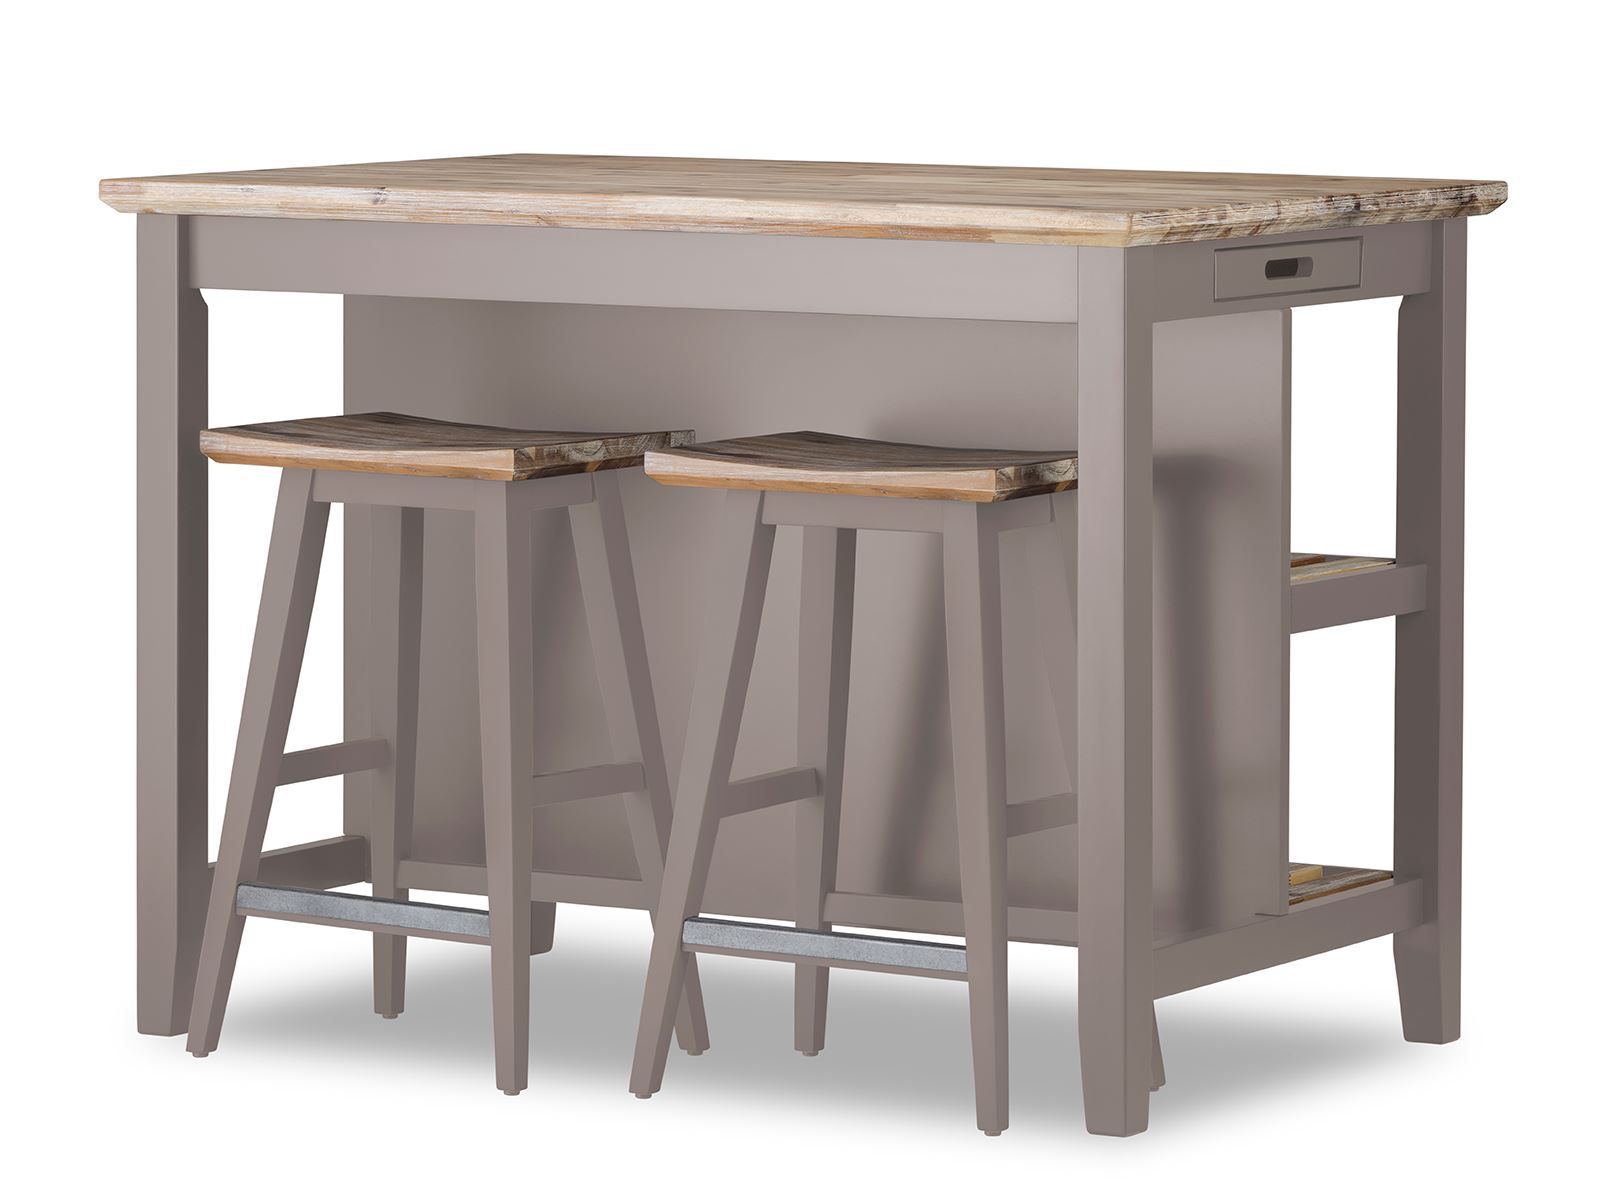 Superieur Details About Florence Breakfast Bar With 2 Large Shelves. Small Kitchen  Island With Storage.